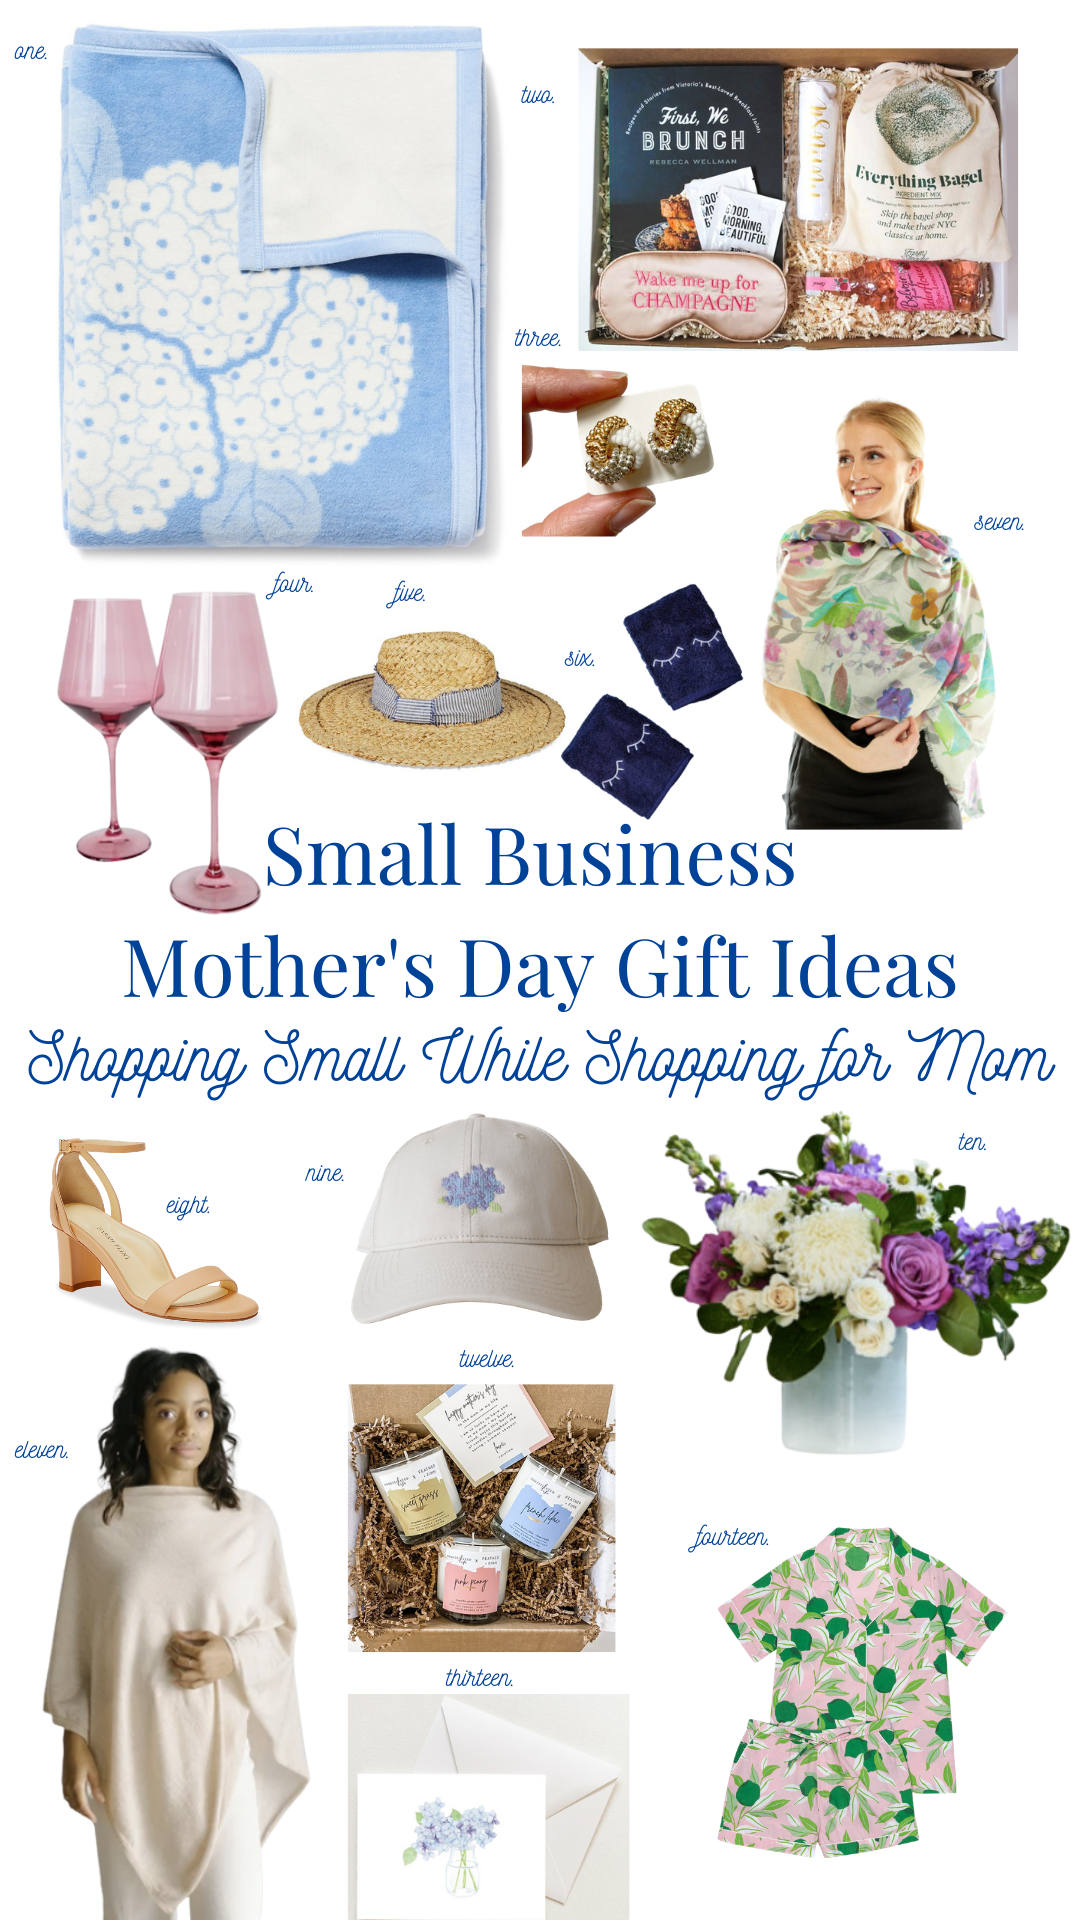 Small Business Gift Ideas for Mother's Day